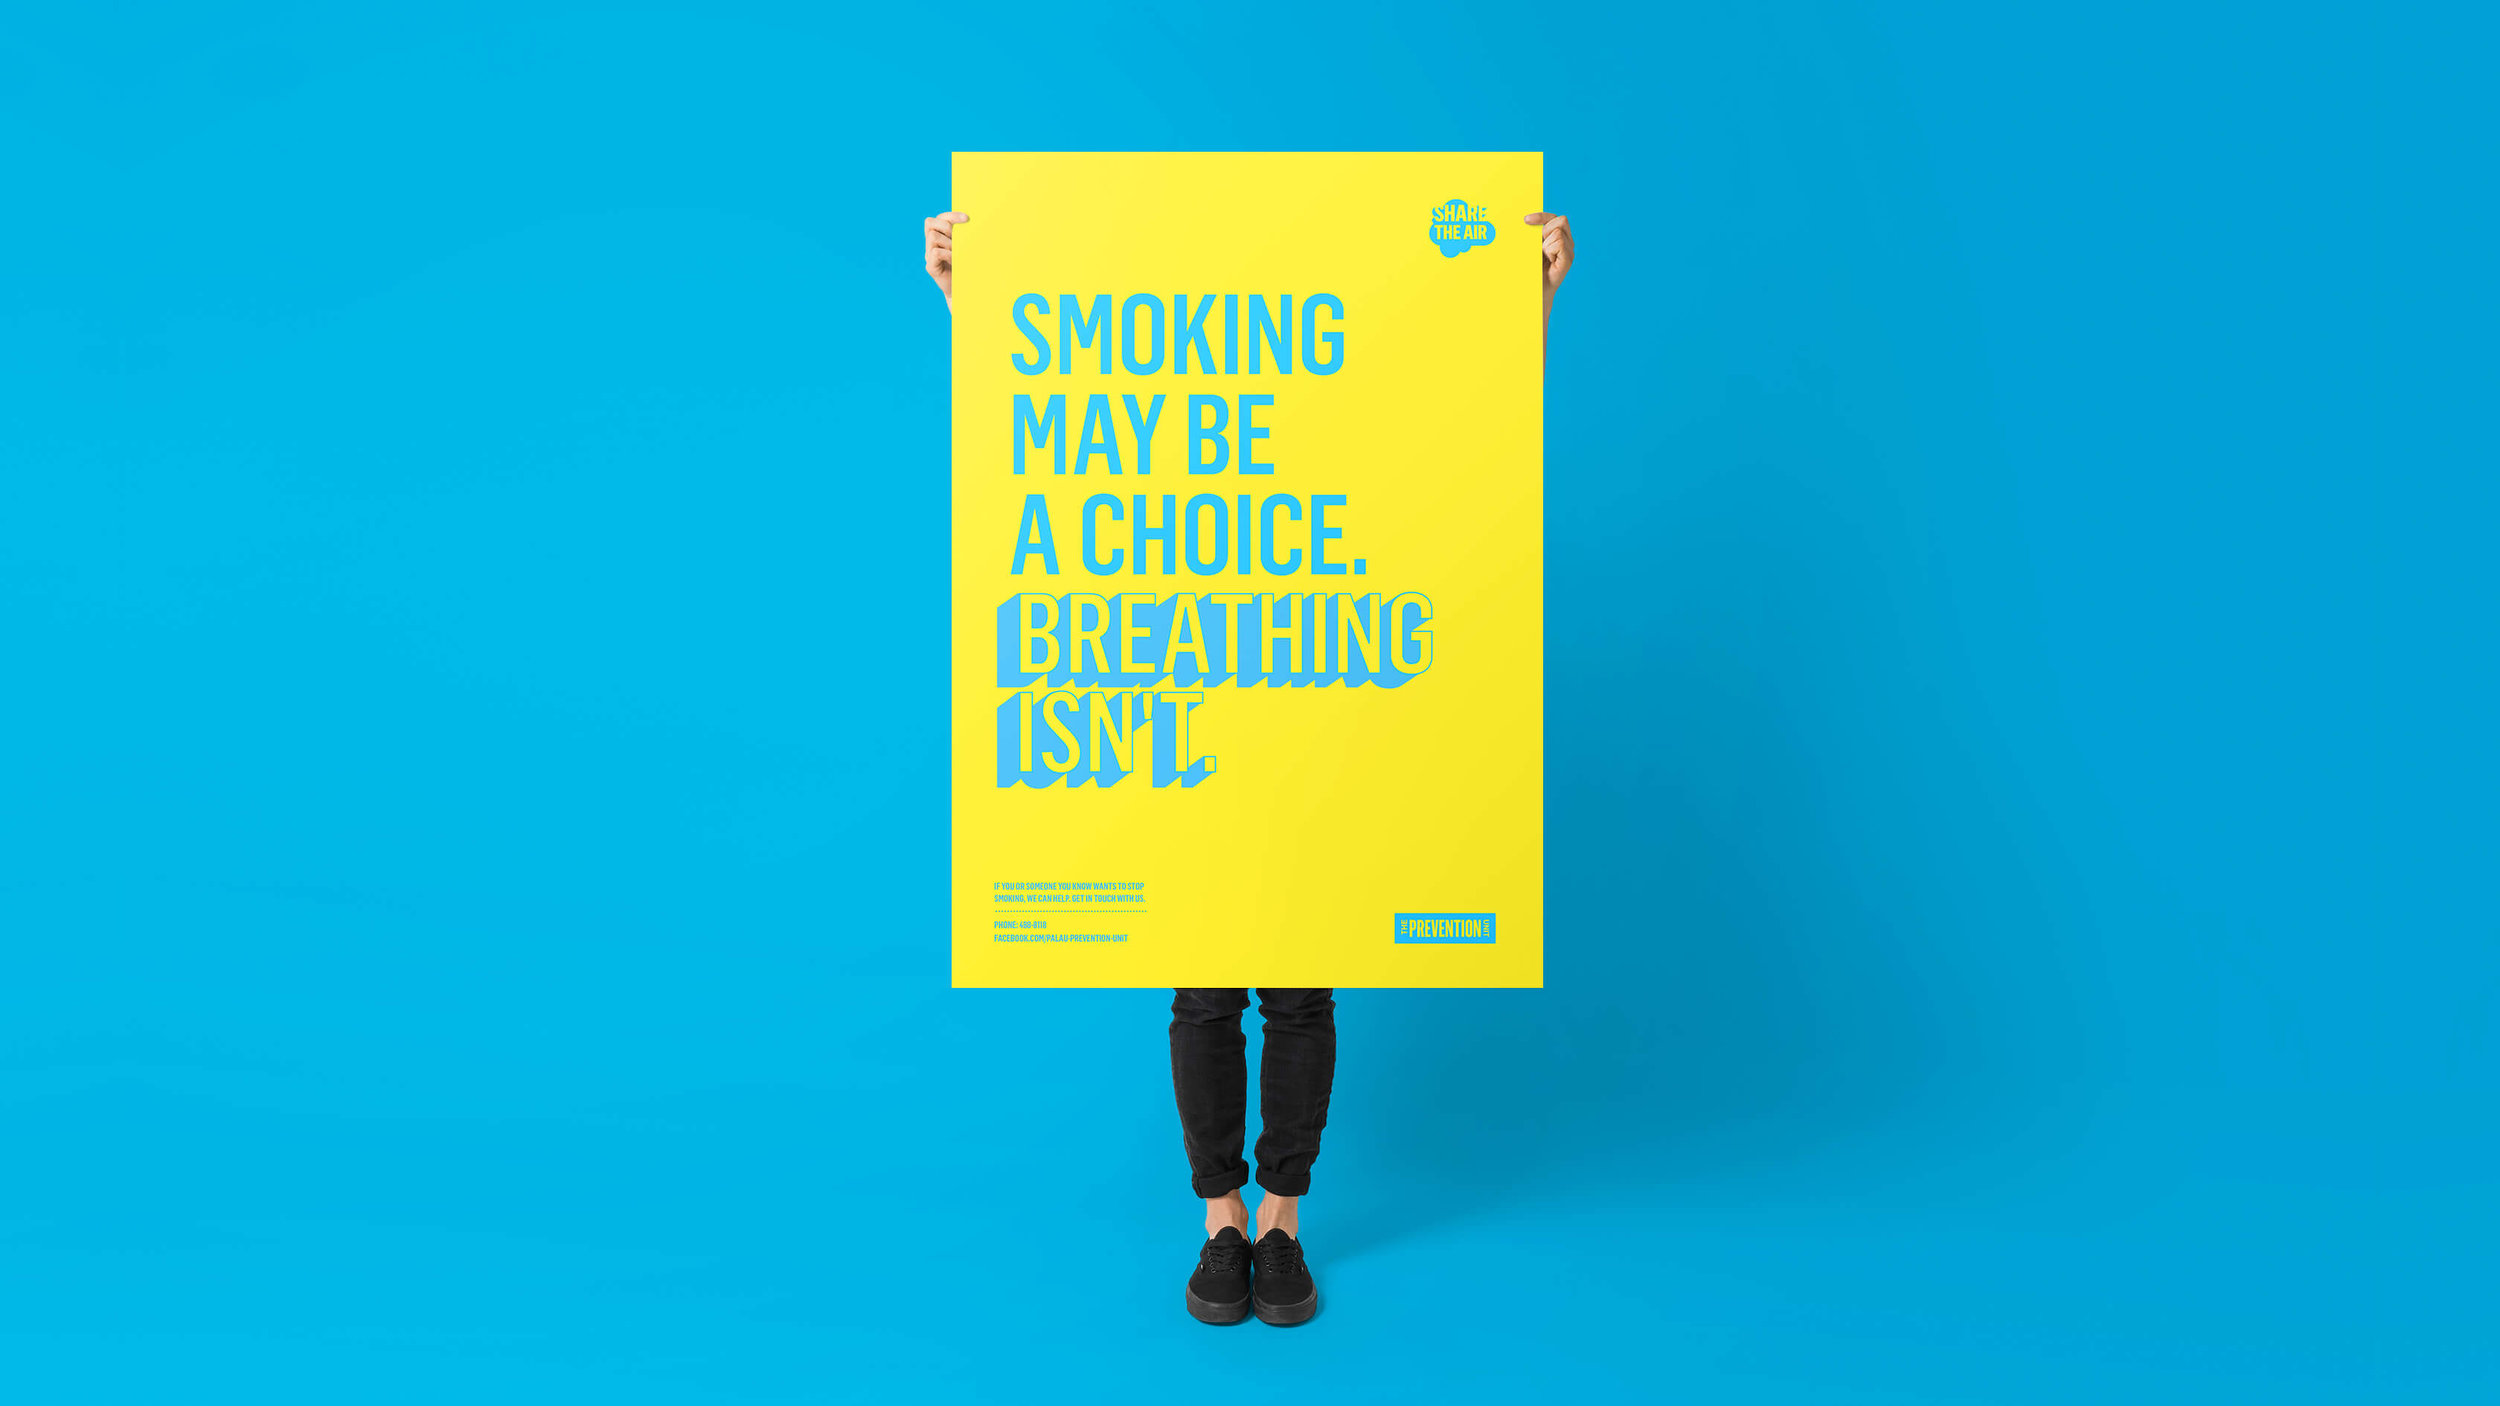 Share the Air Campaign